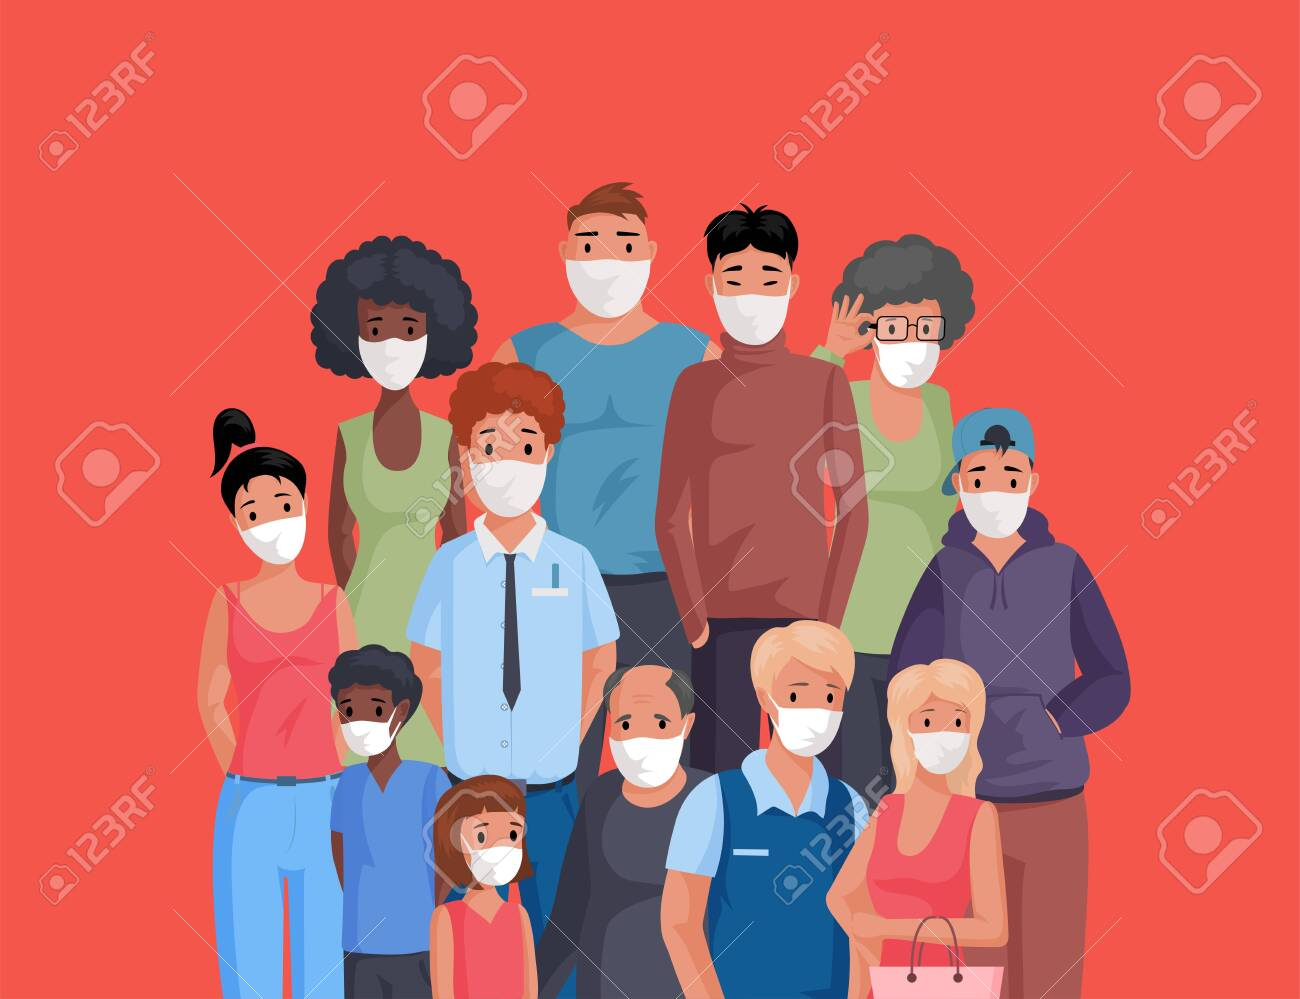 Multiracial and multicultural group of people standing together and wearing face masks flat cartoon illustration. - 148111872